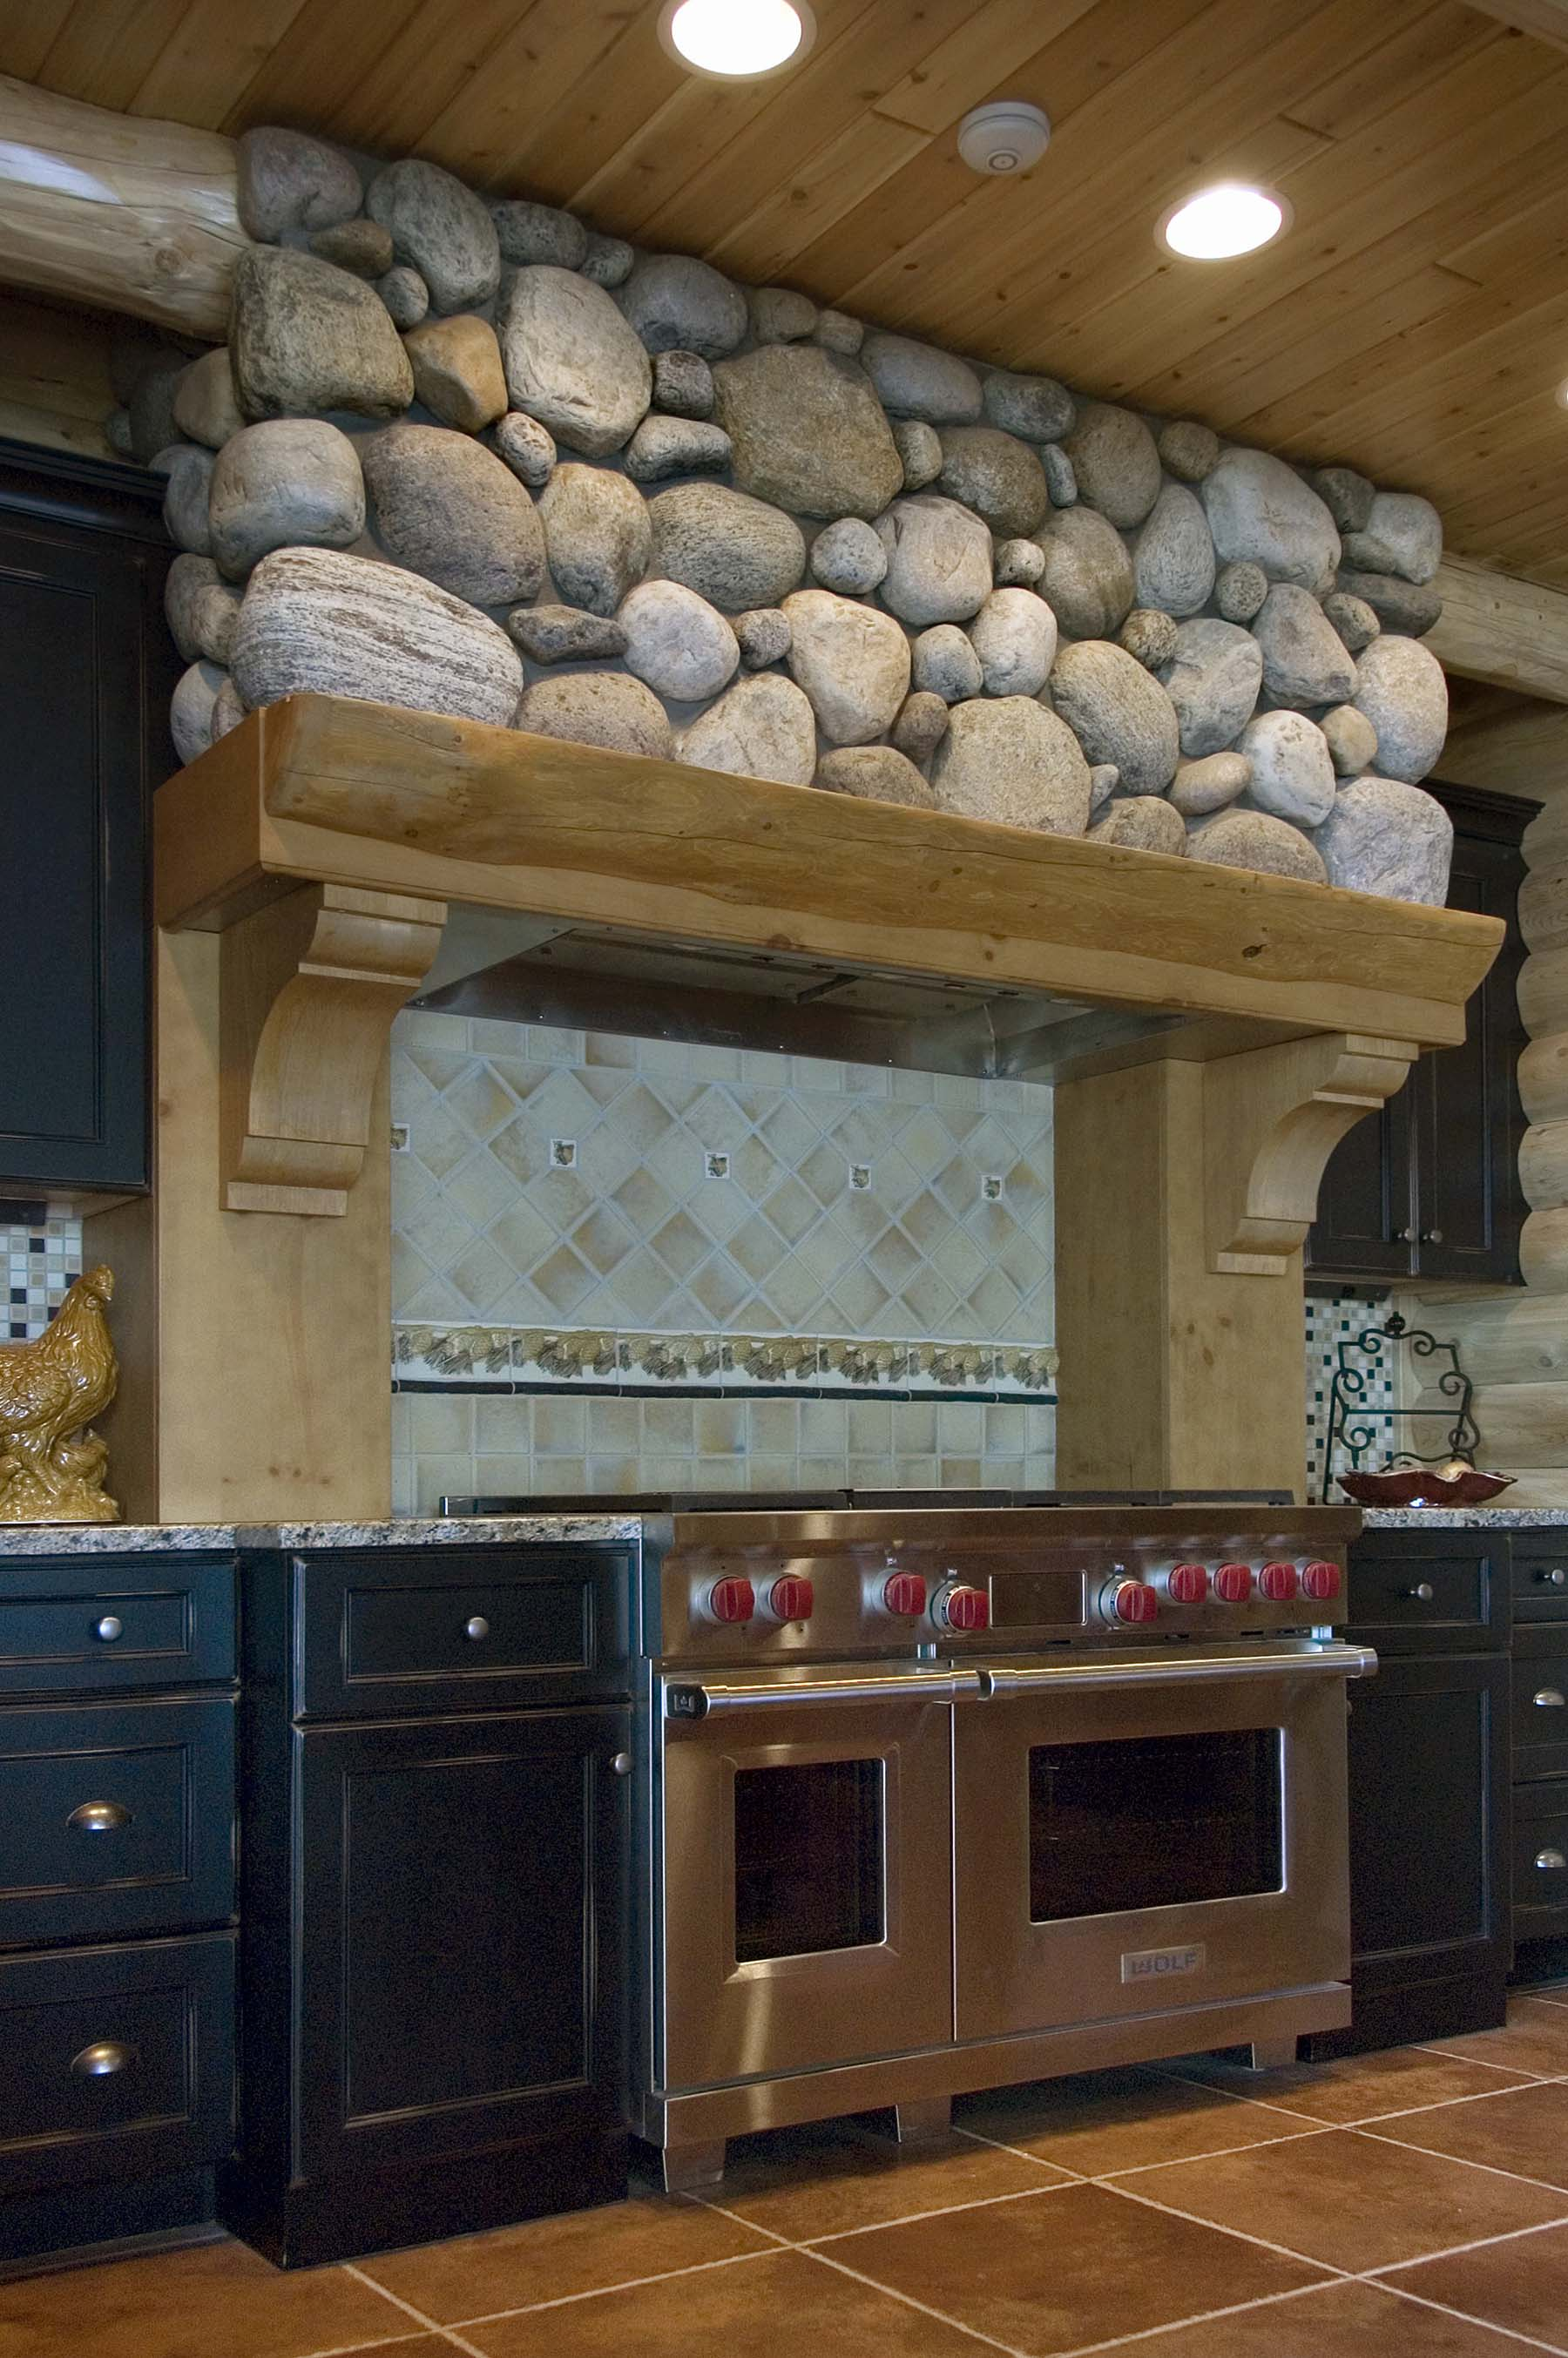 Adirondack Fieldstone wall above stovetop in kitchen